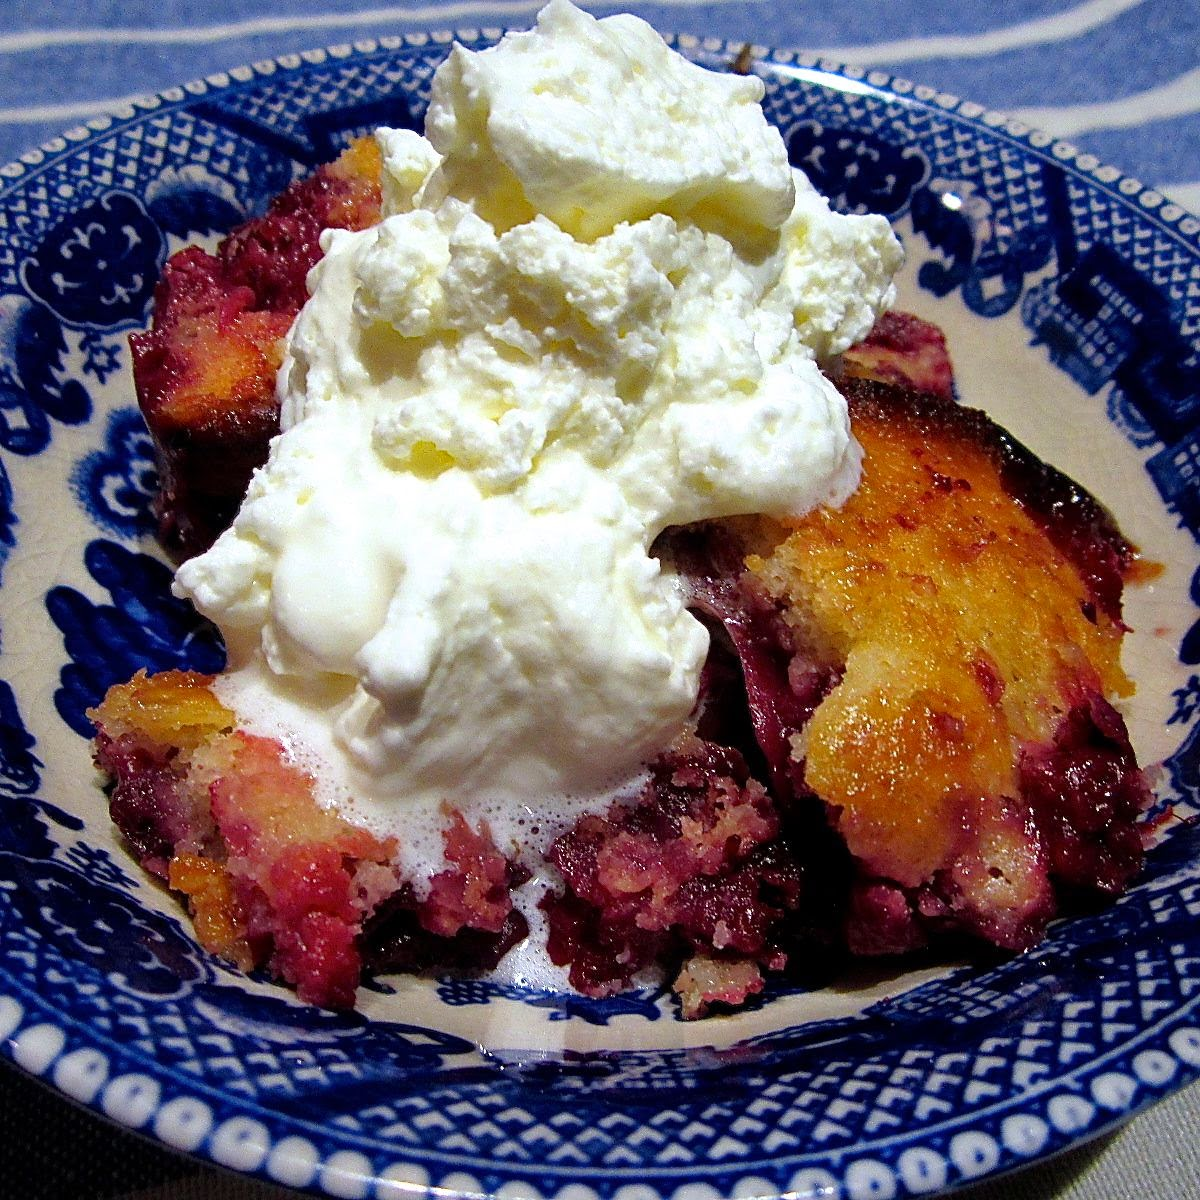 mixed berry cobbler with whipped cream